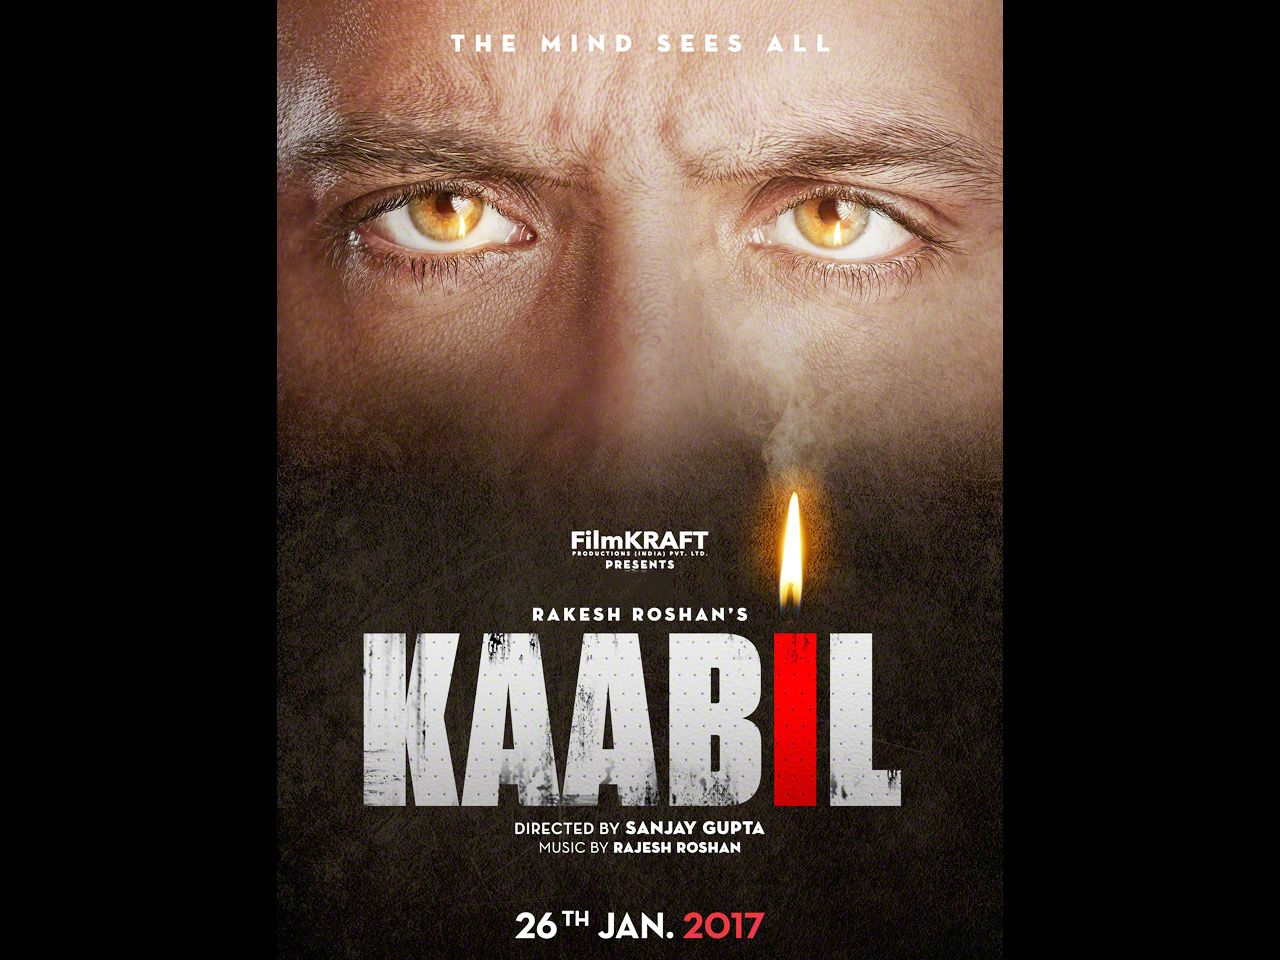 Kaabil Movie Wallpapers Hd Download Free 1080p Movie Wallpapers Hd Movies Download Download Movies